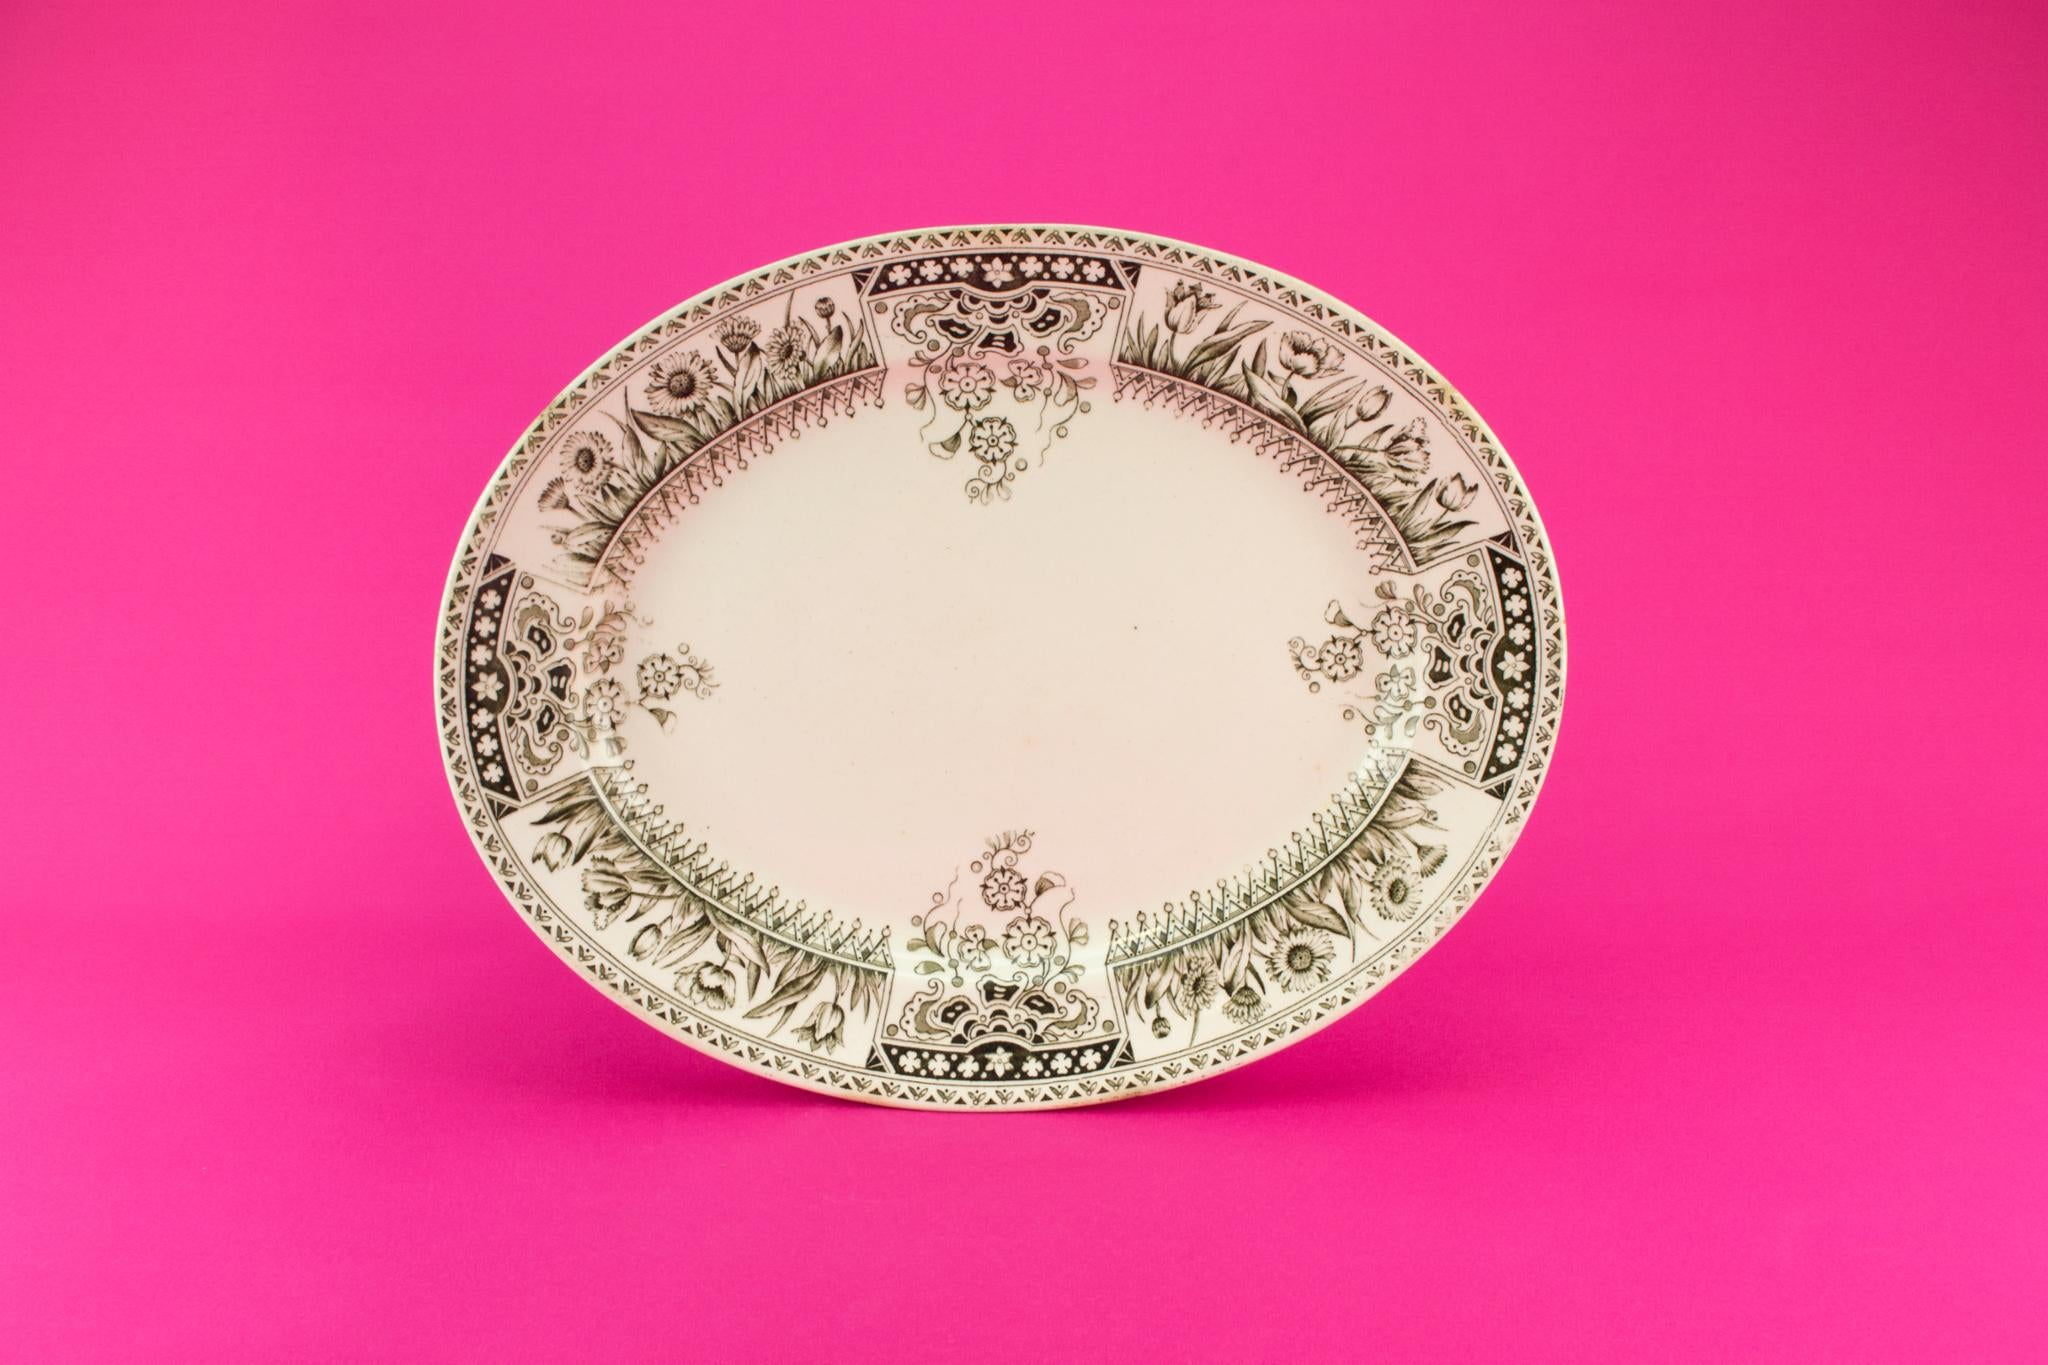 Aesthetic Movement serving platter, English 1880s